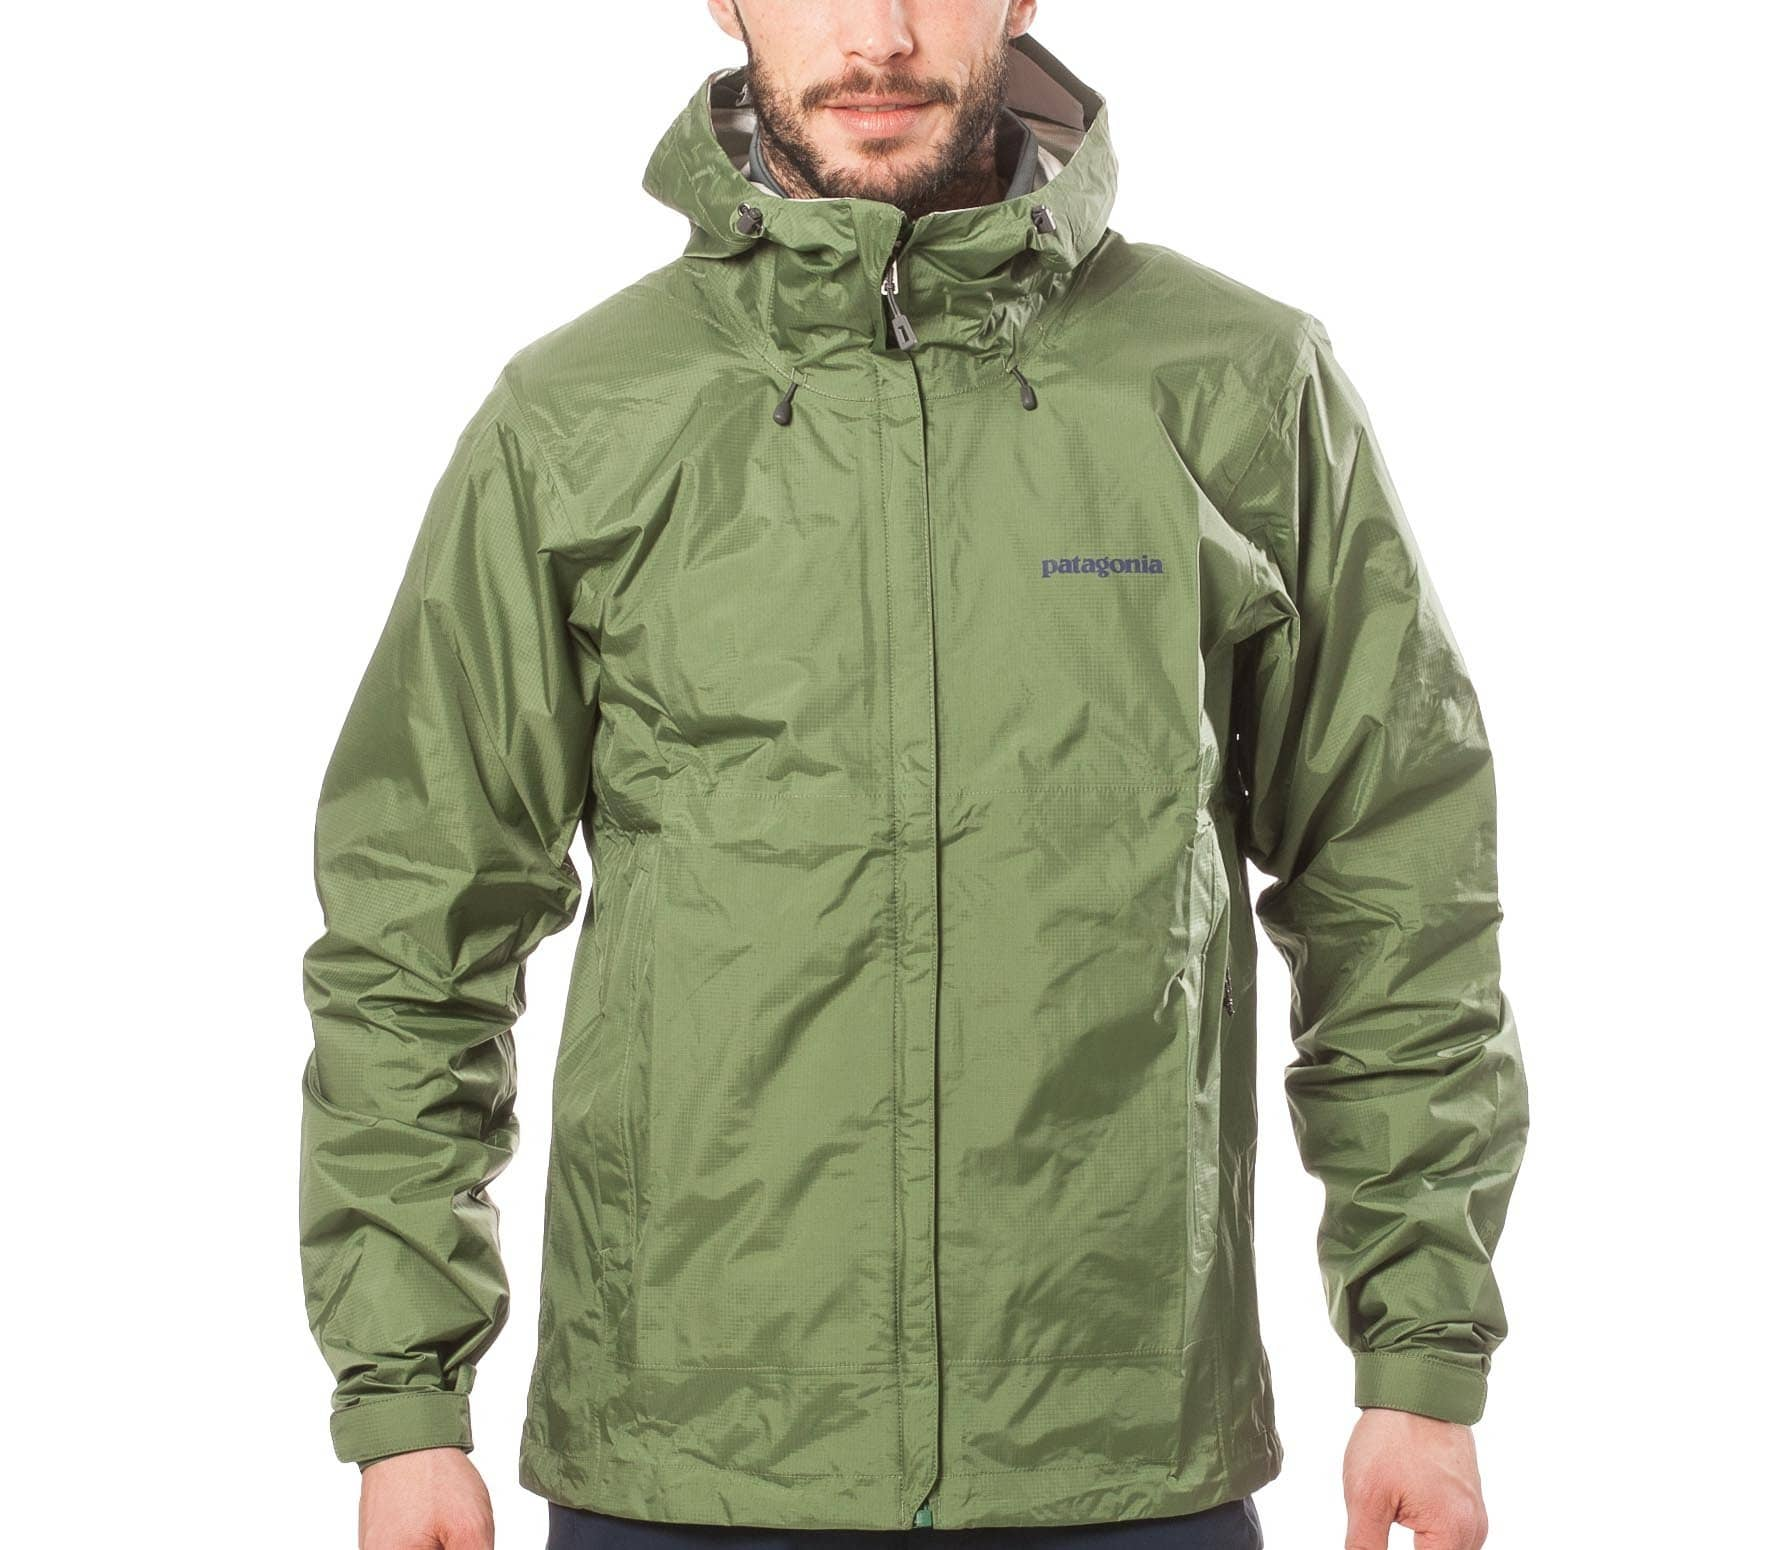 best service 2275e 9b9e4 Patagonia - Torrentshell men's hard shell jacket (green)